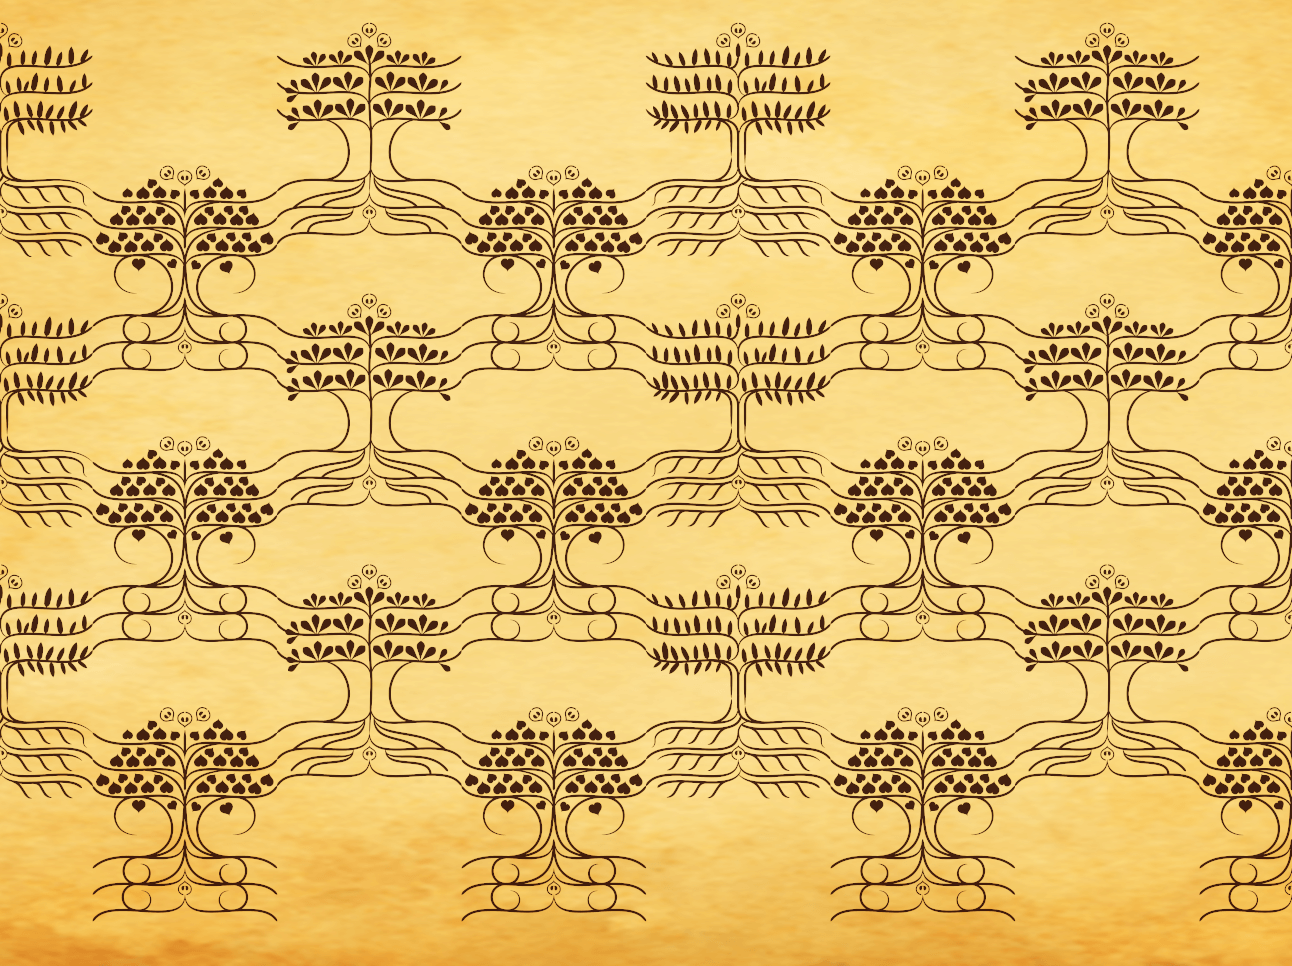 Ishana-Tree-Grid